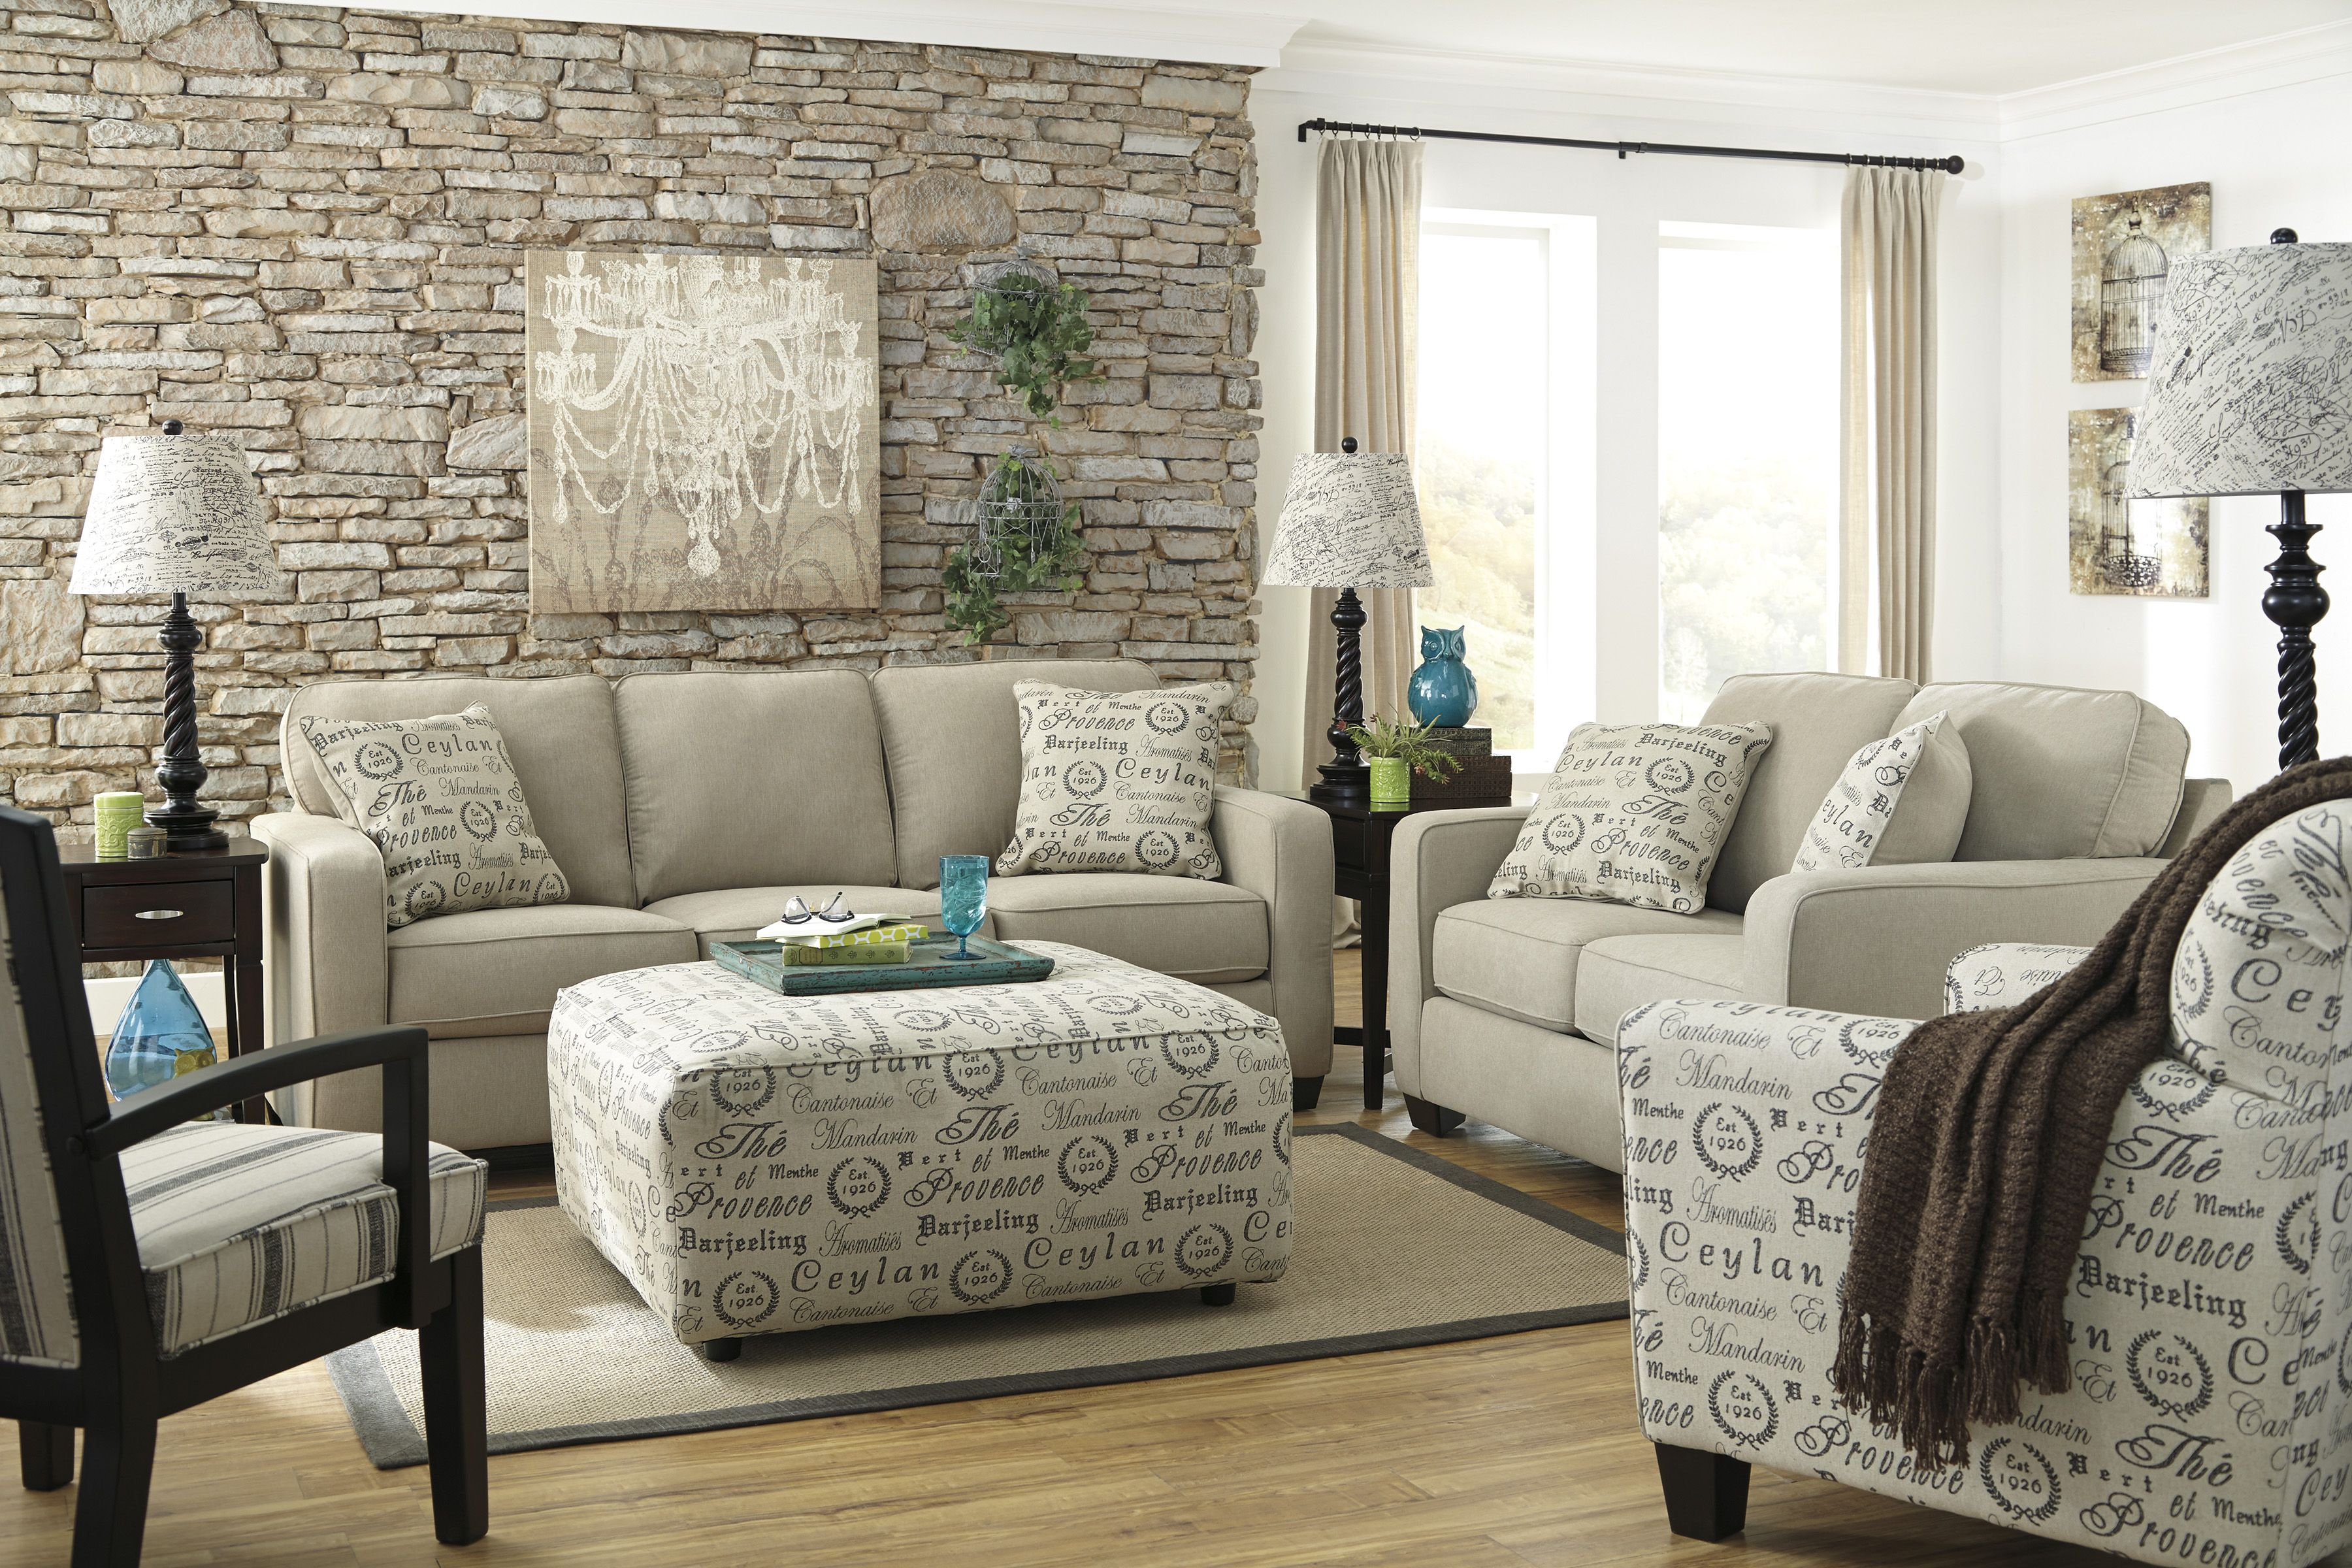 Match your accent chair in with your throw pillows to tie your